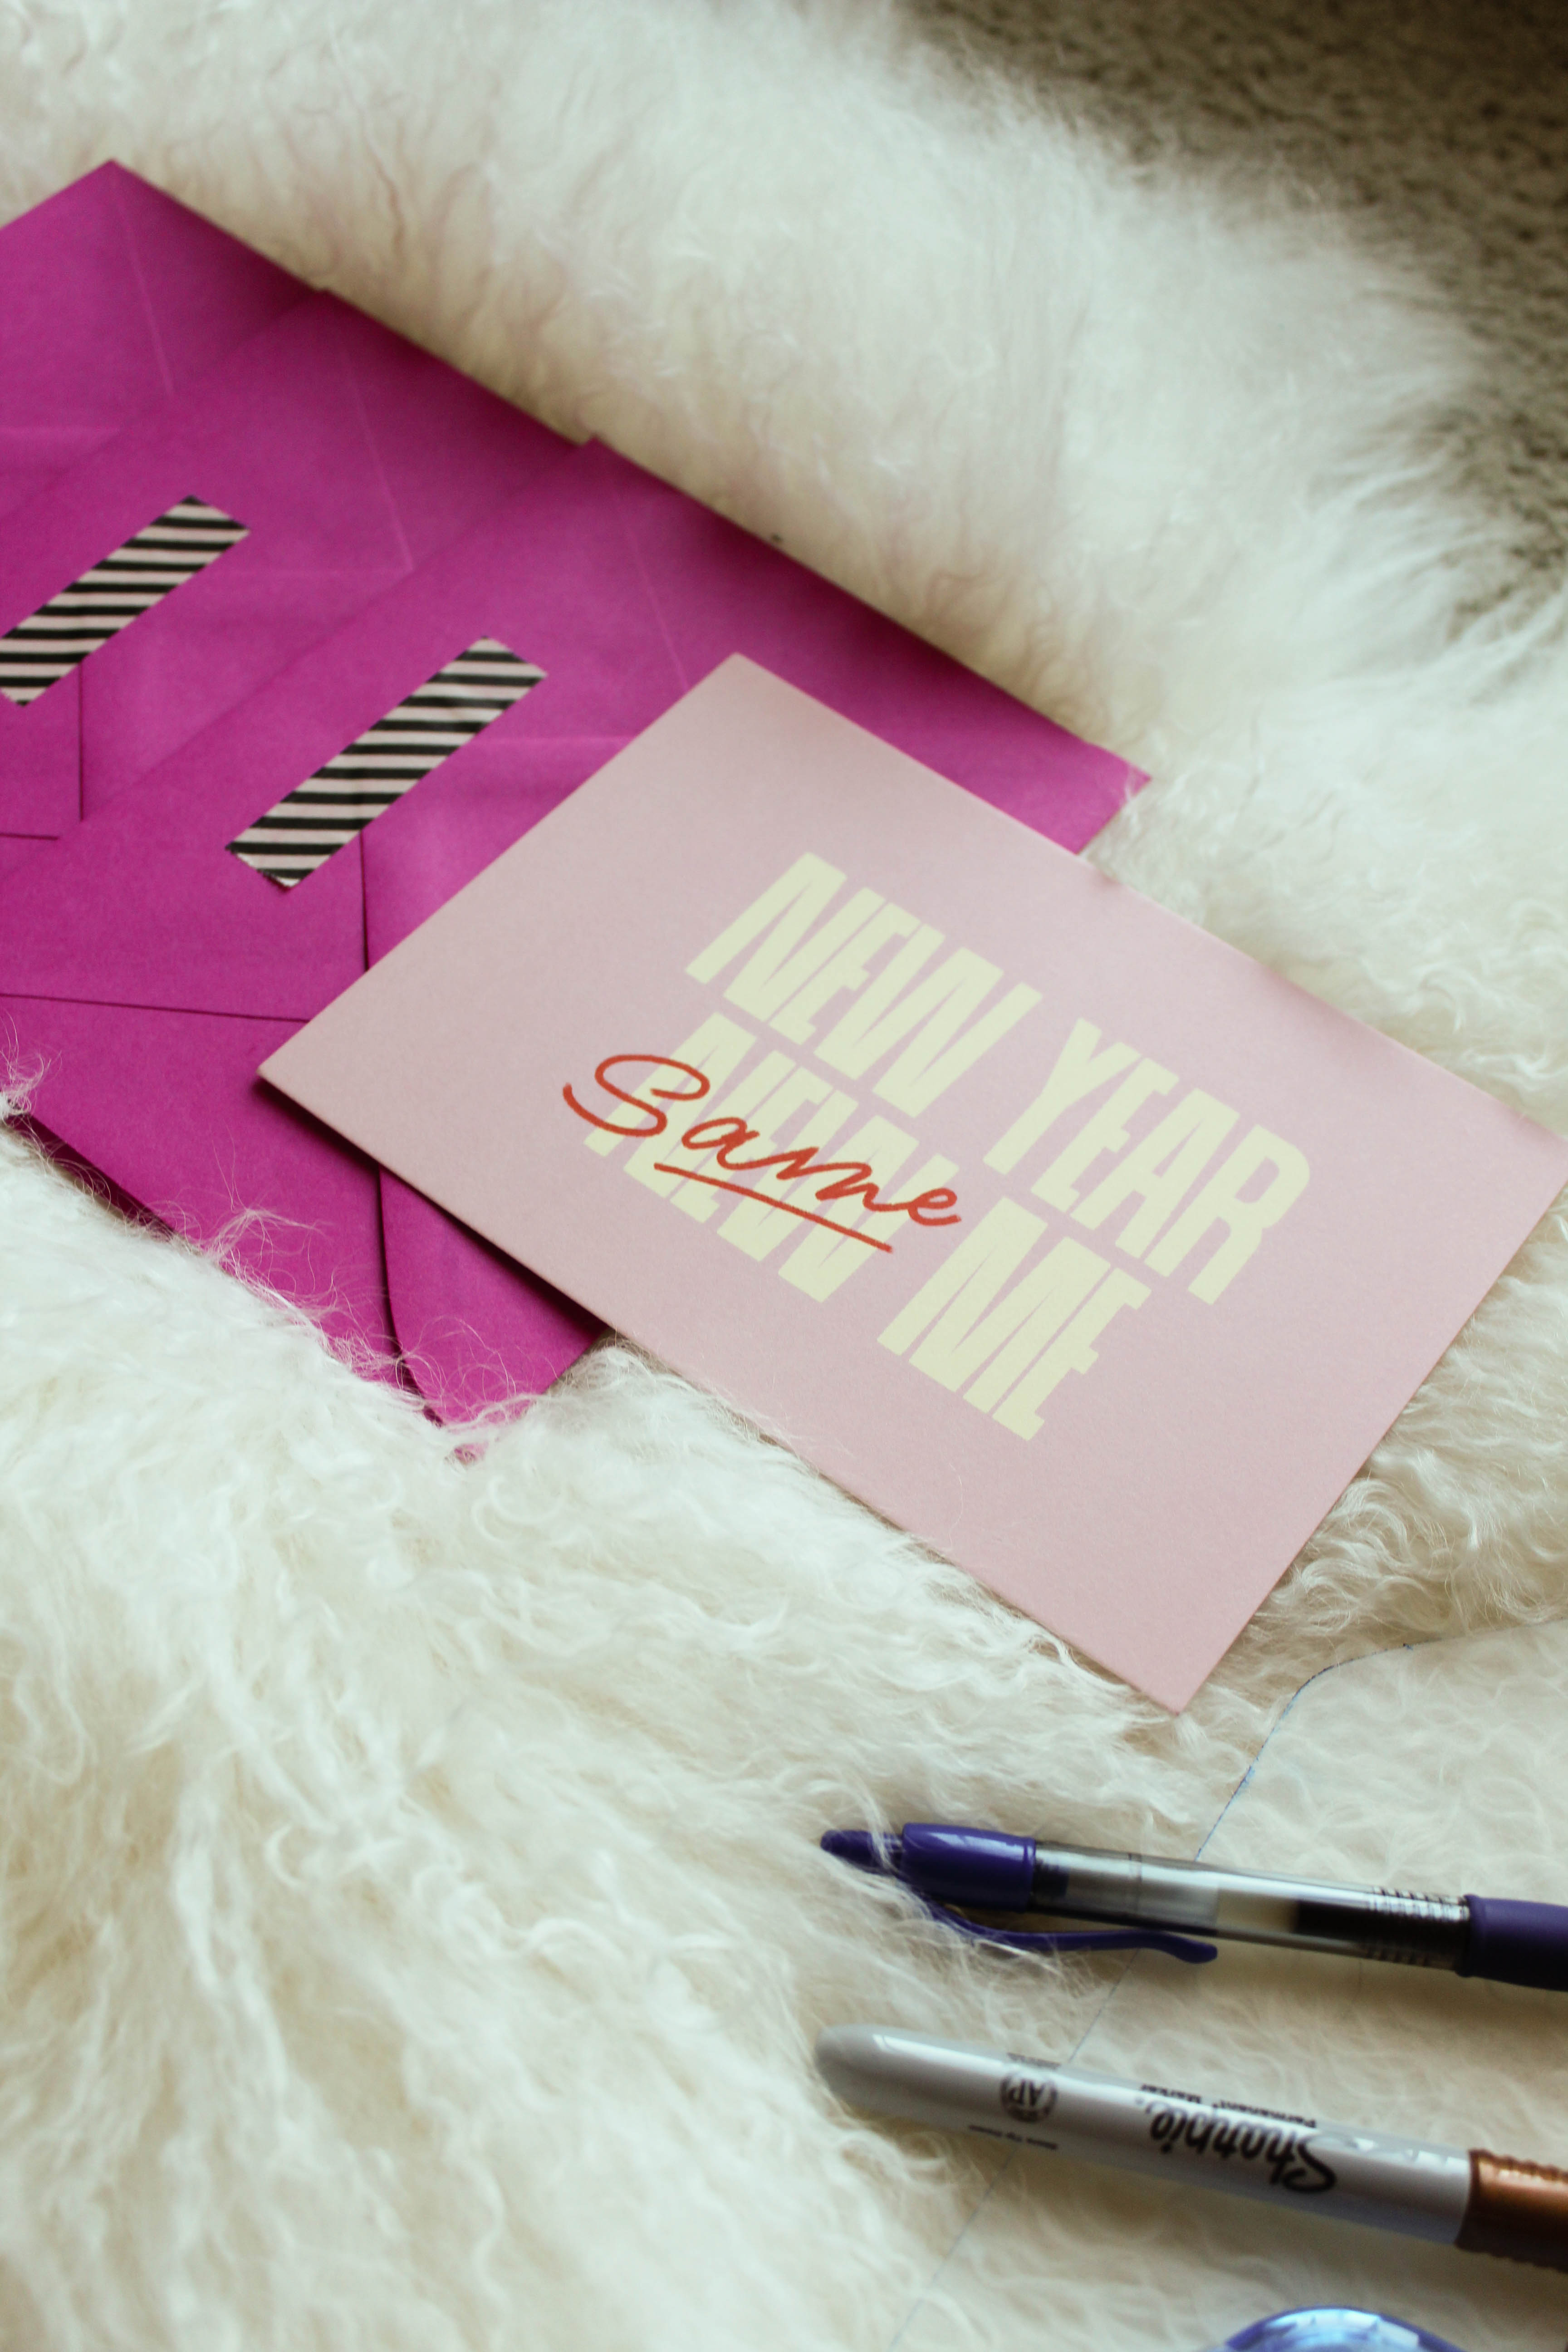 Holiday cards stressing you out? Southern lifestyle blogger shares a tutorial for DIY envelope liners + tips for making your Christmas cards stand out. // washi tape ideas, kate spade new york stationery, paper source greeting cards, customized christmas cards, best holiday cards, how to use washi tapes, snail mail ideas